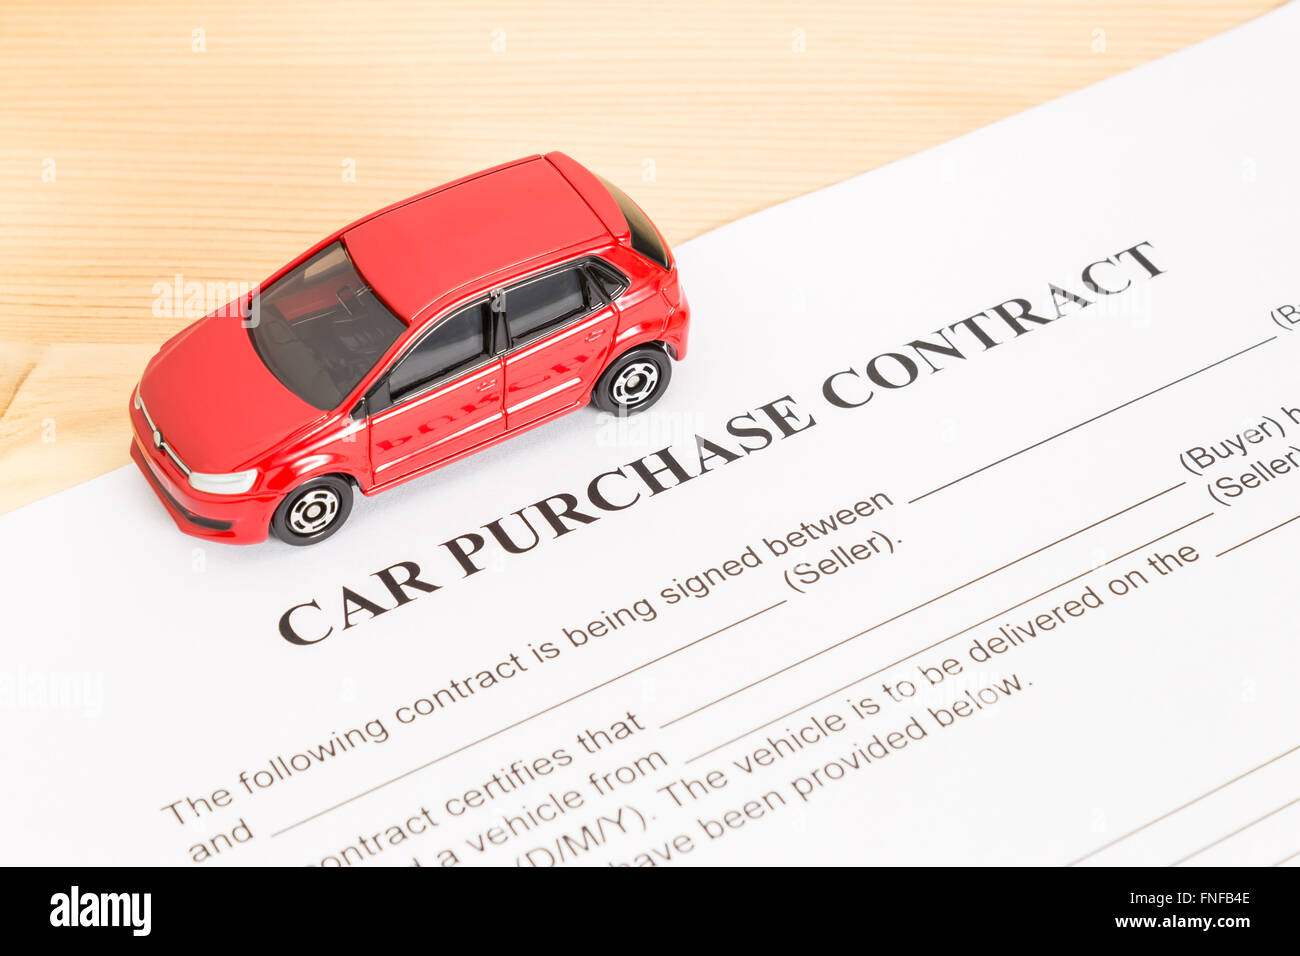 Delightful Car Purchase Contract With Red Car On Left View. Auto Purchase Agreement Or  Legal Document